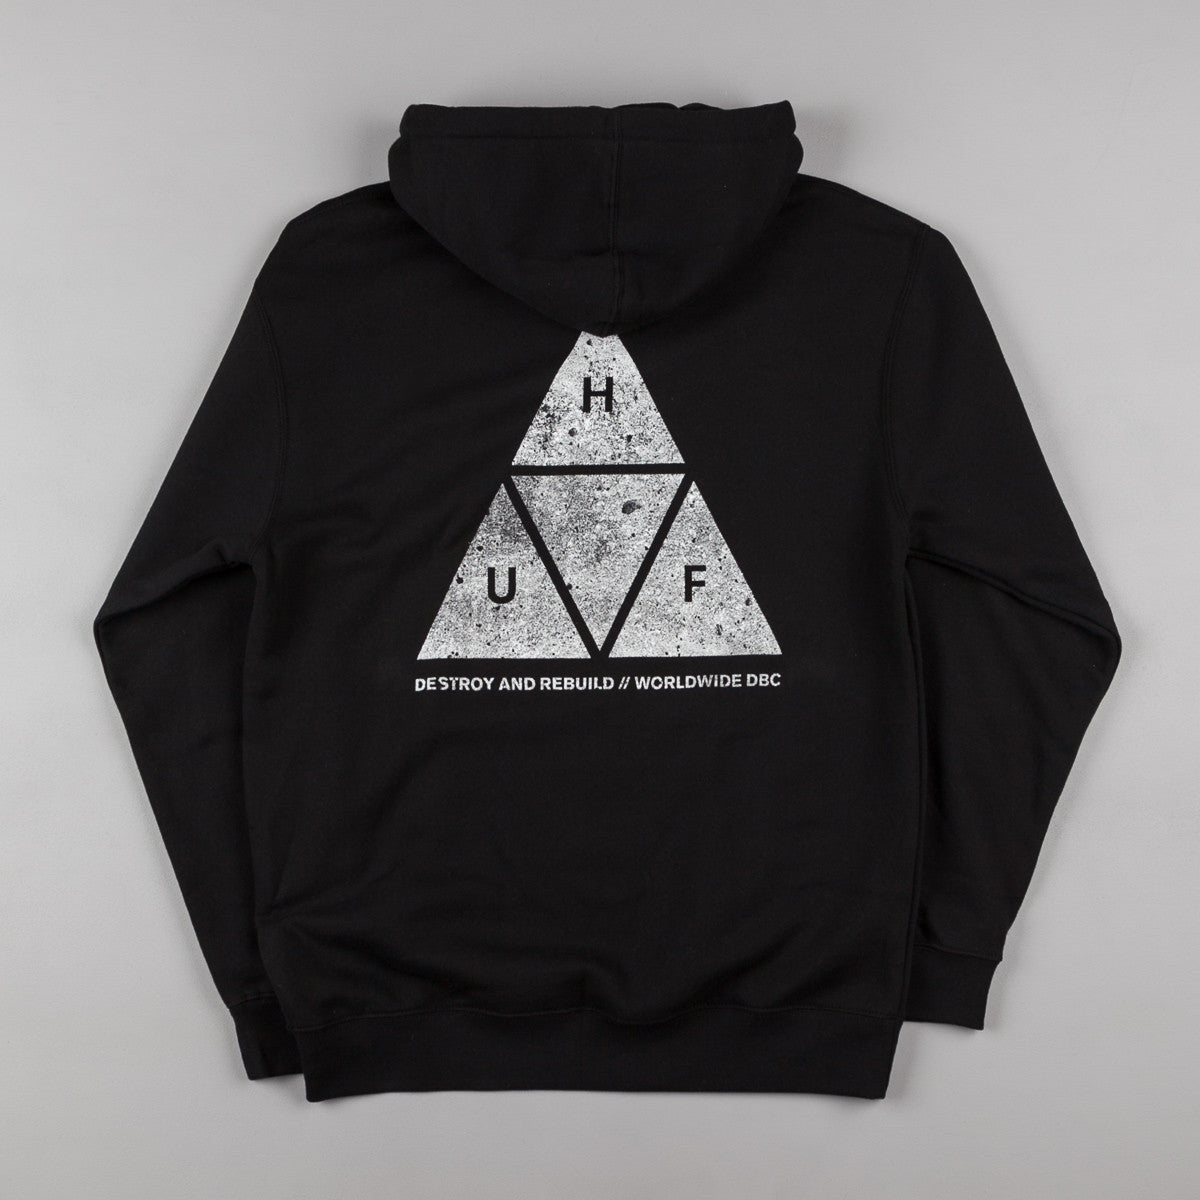 HUF Concrete Triple Triangle Hooded Sweatshirt - Black